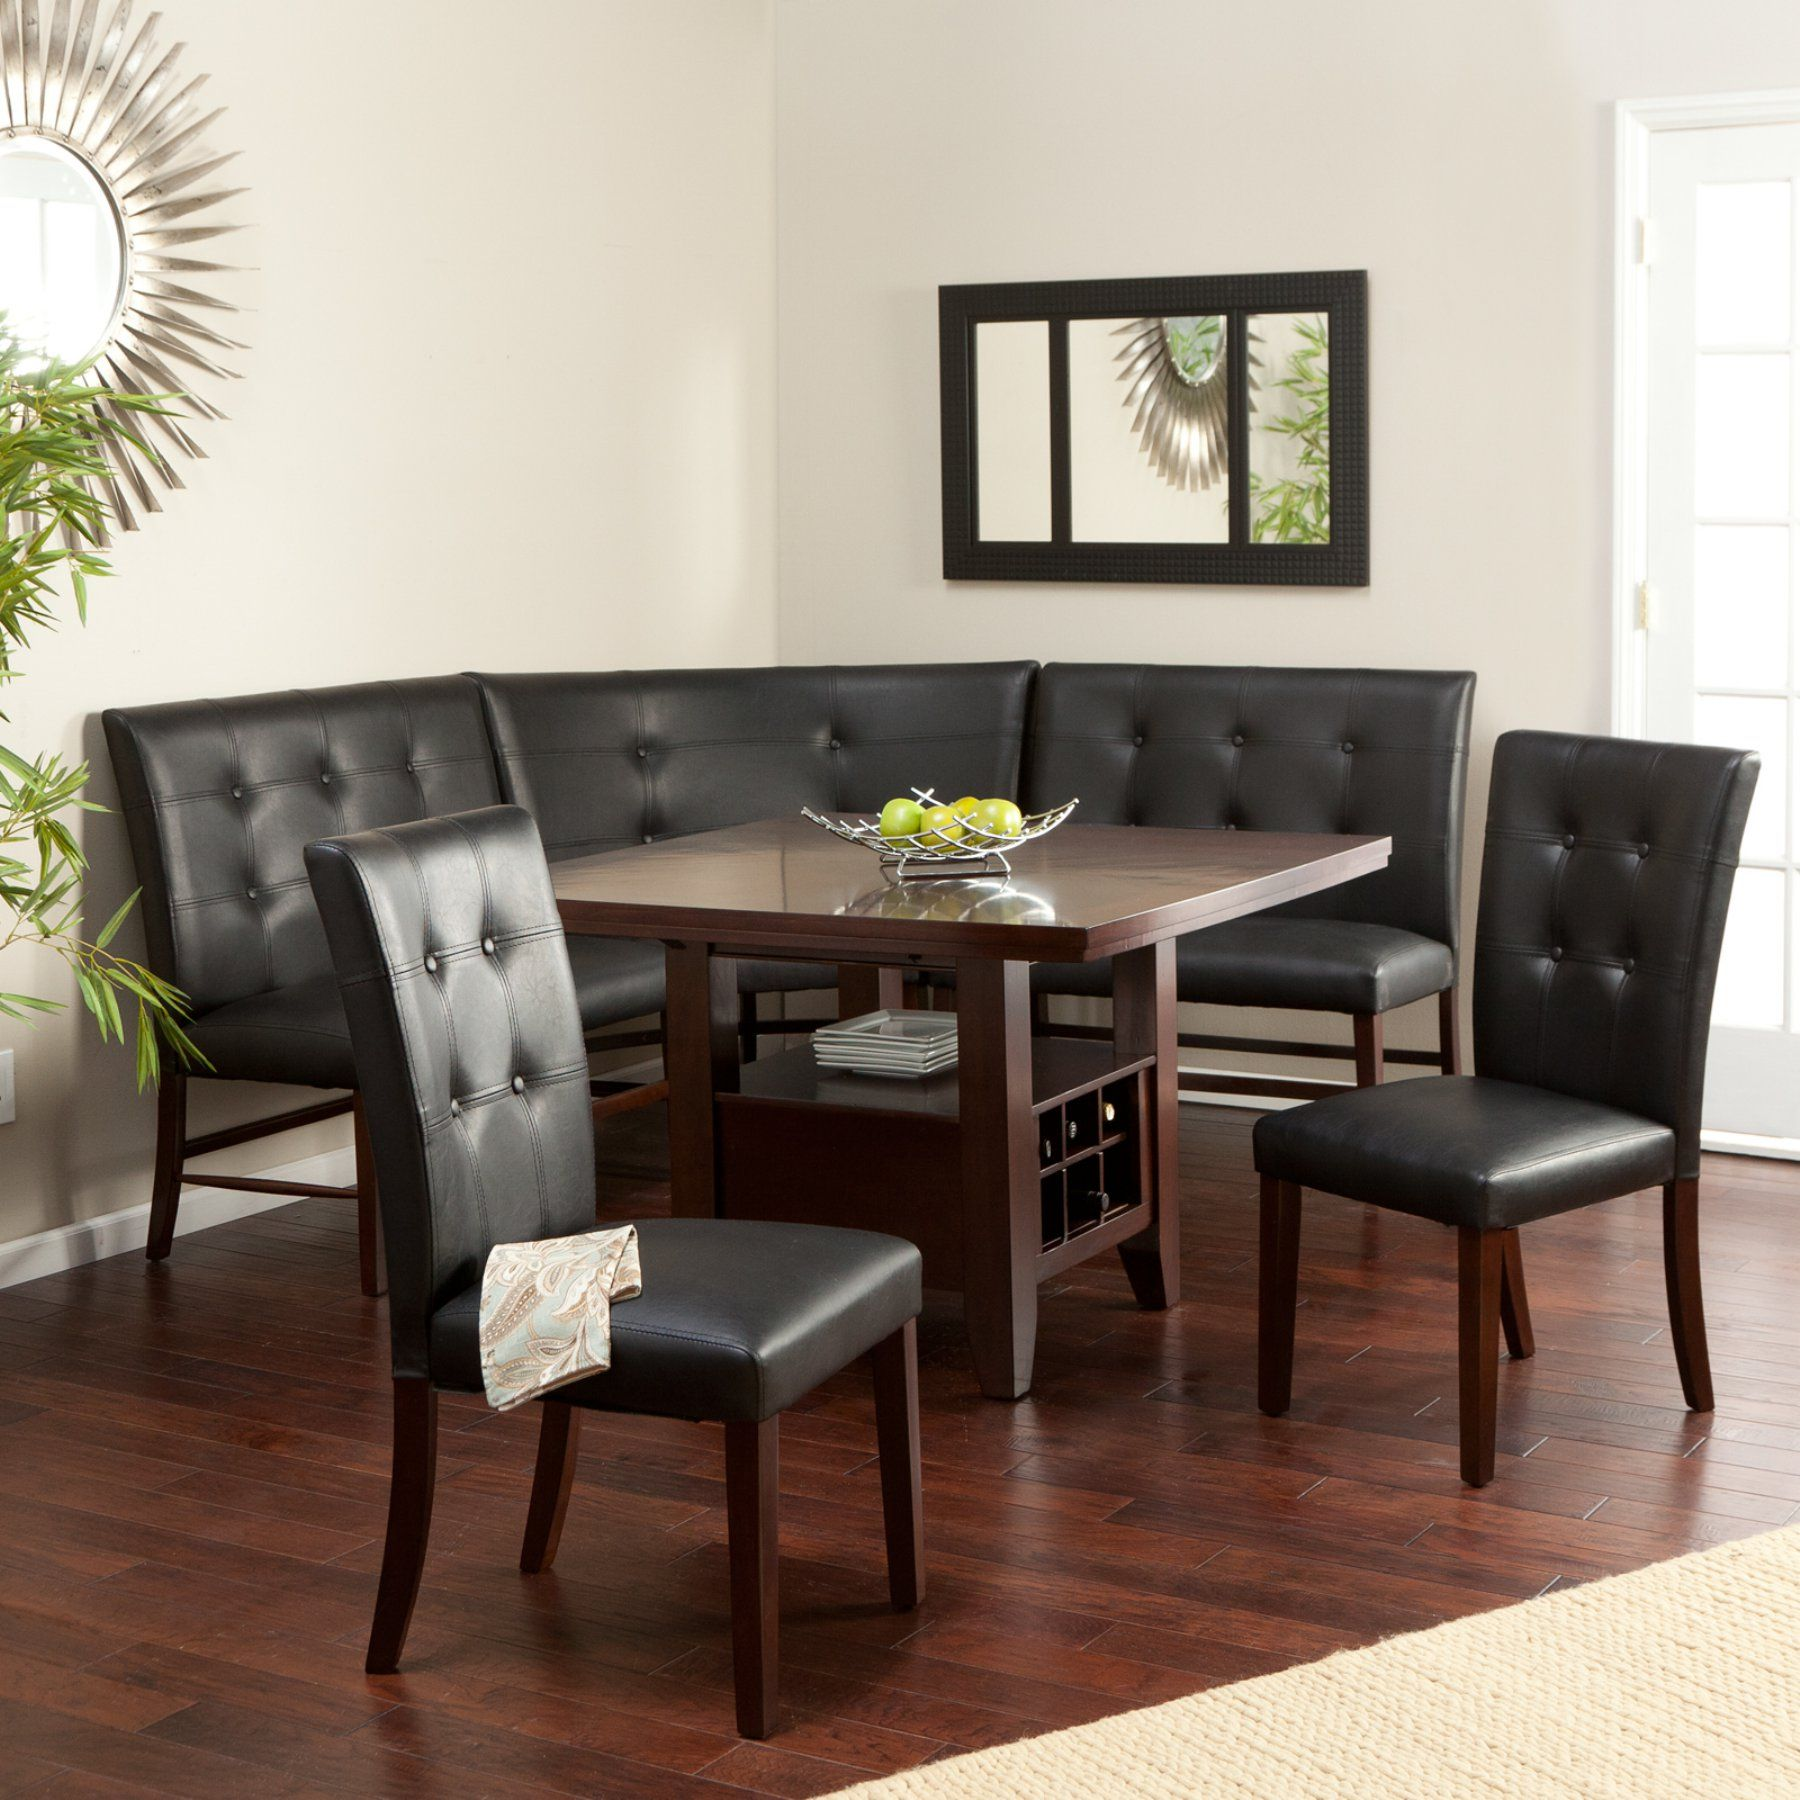 Layton Espresso 6 Piece Breakfast Nook Set  Wit202